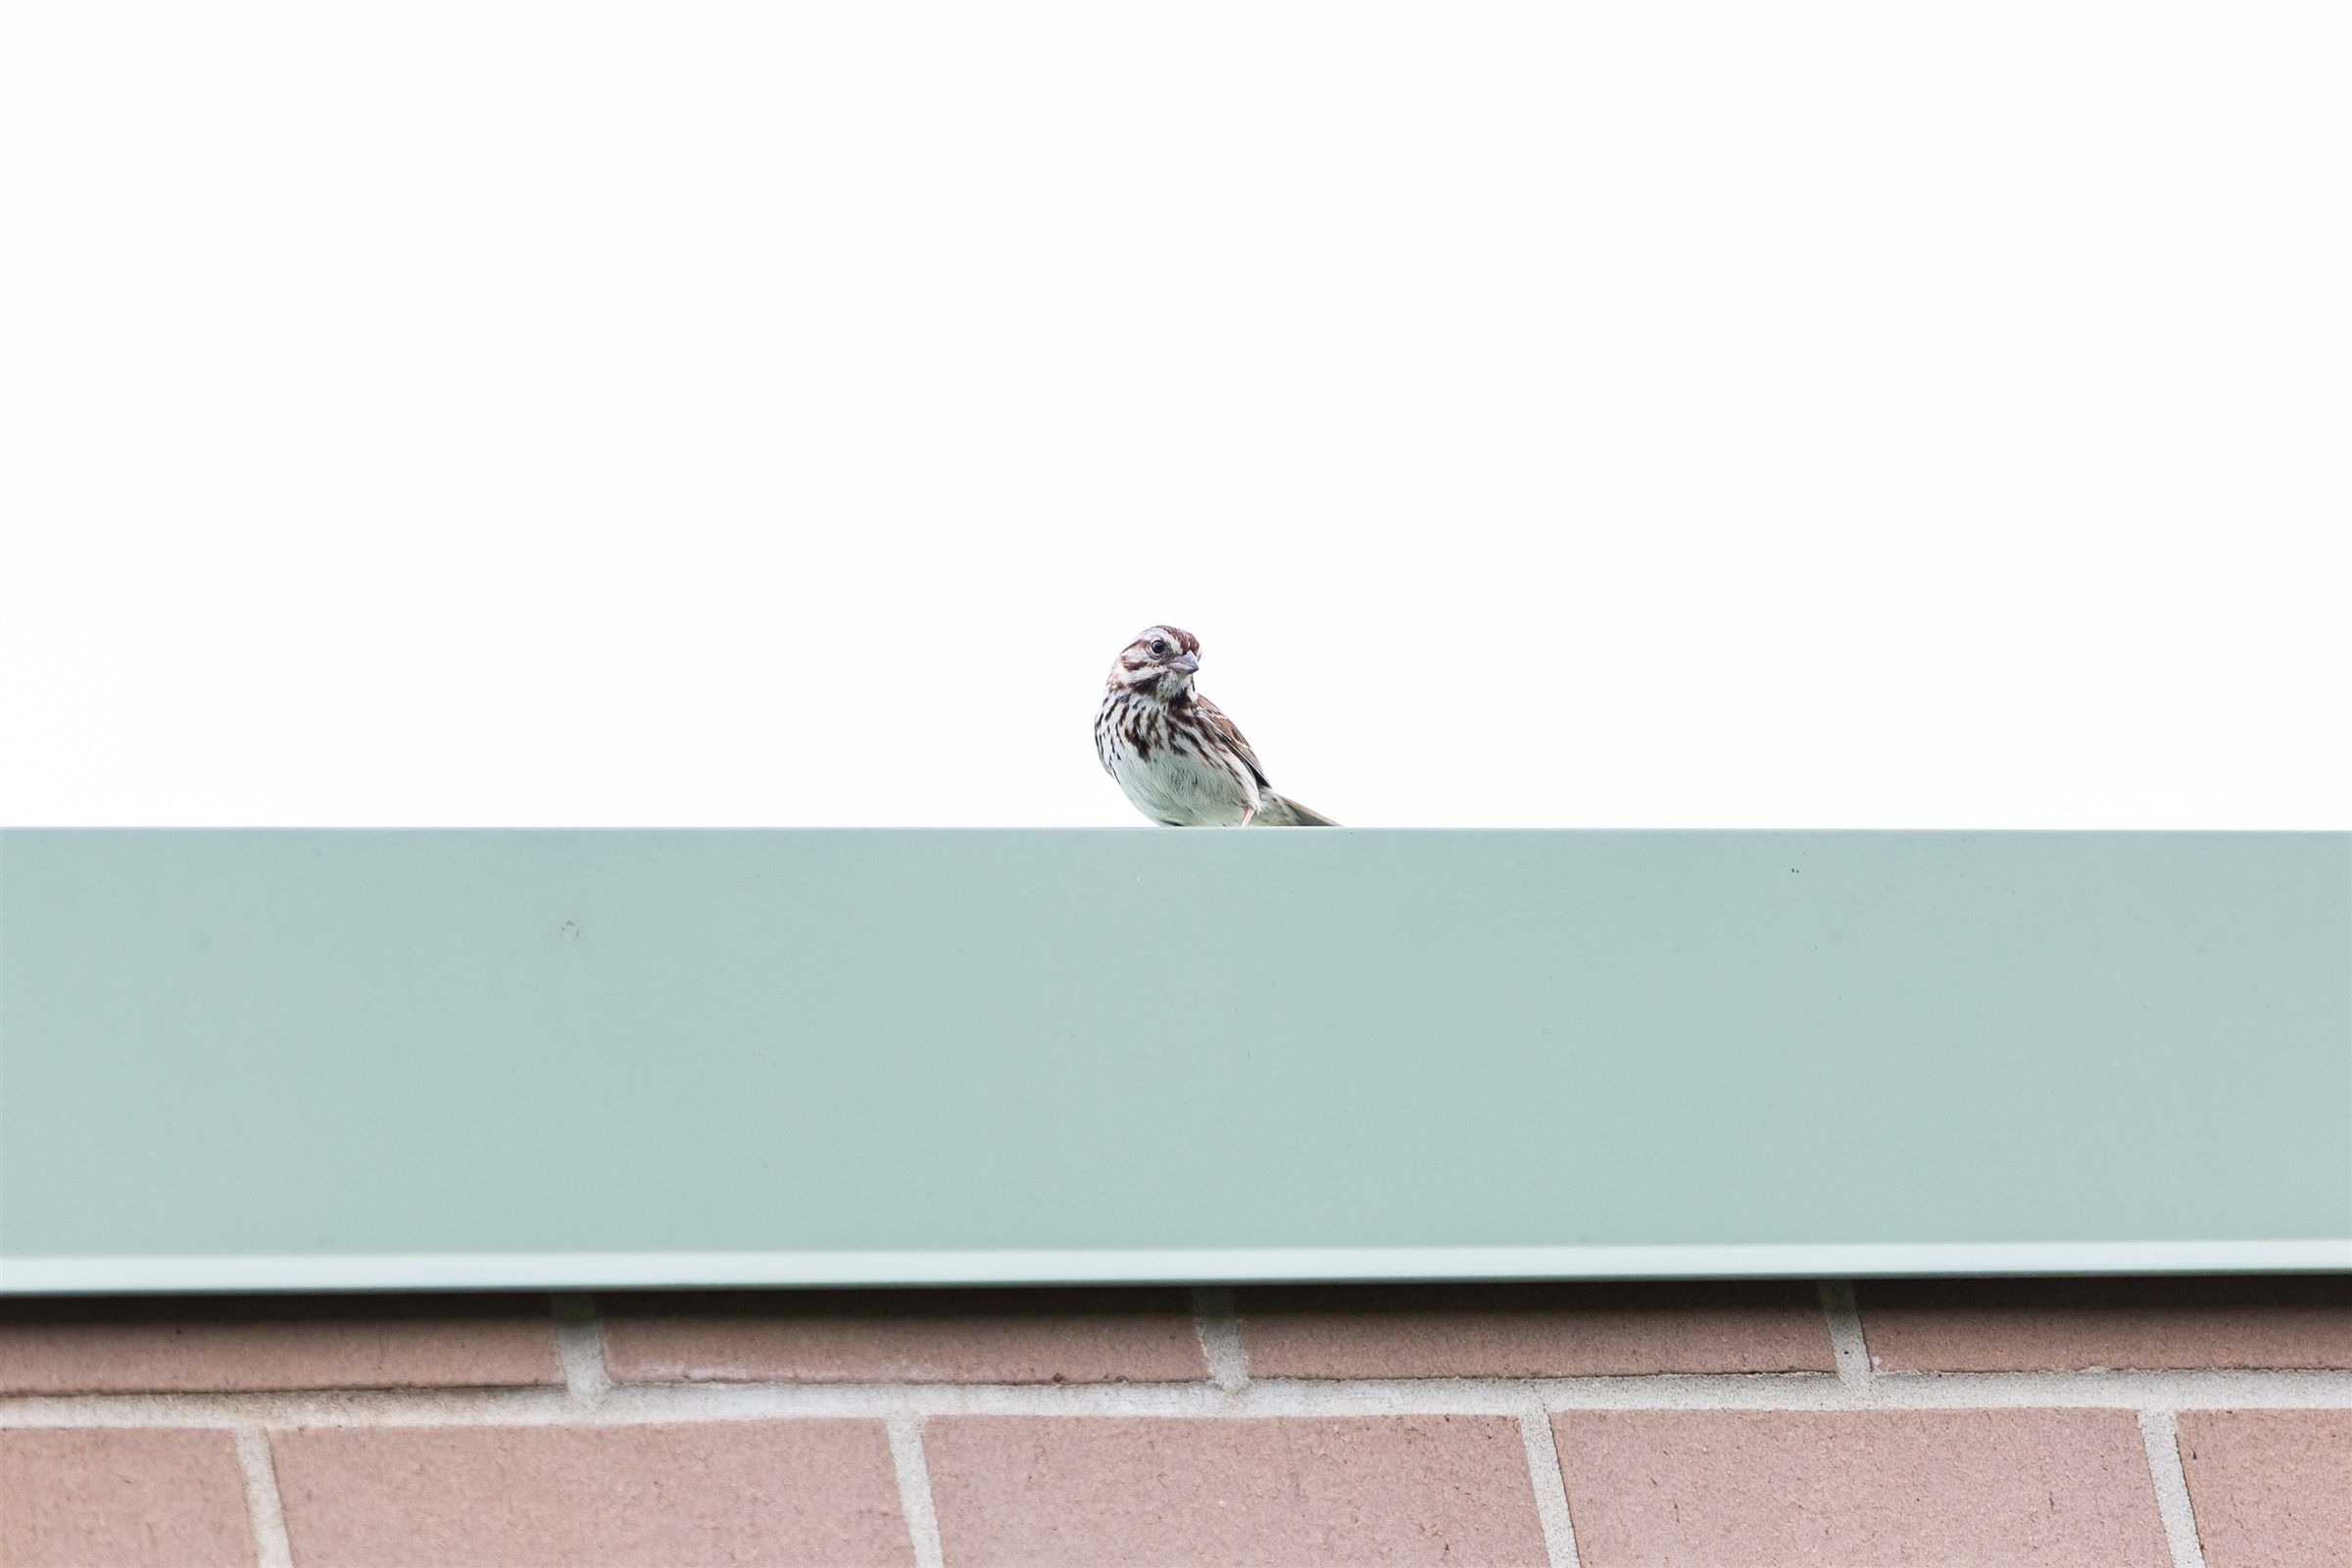 This song sparrow spent a lot of time on the roof over the middle school English room. He was there most mornings around 10 am.